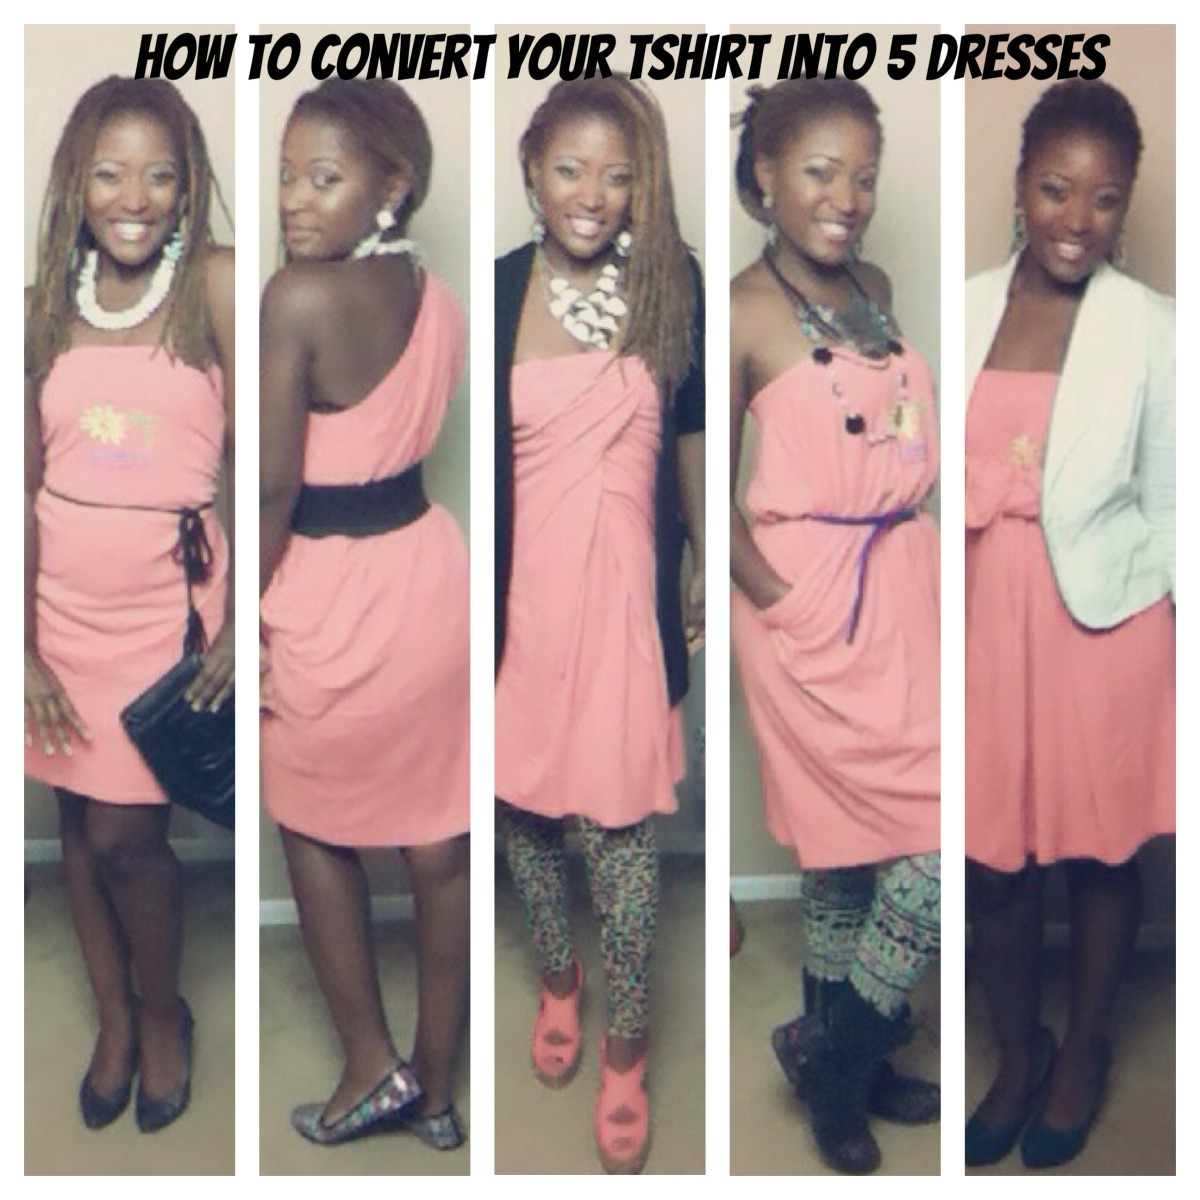 How to Convert a Basic T-Shirt Into 5 Lovely Dresses